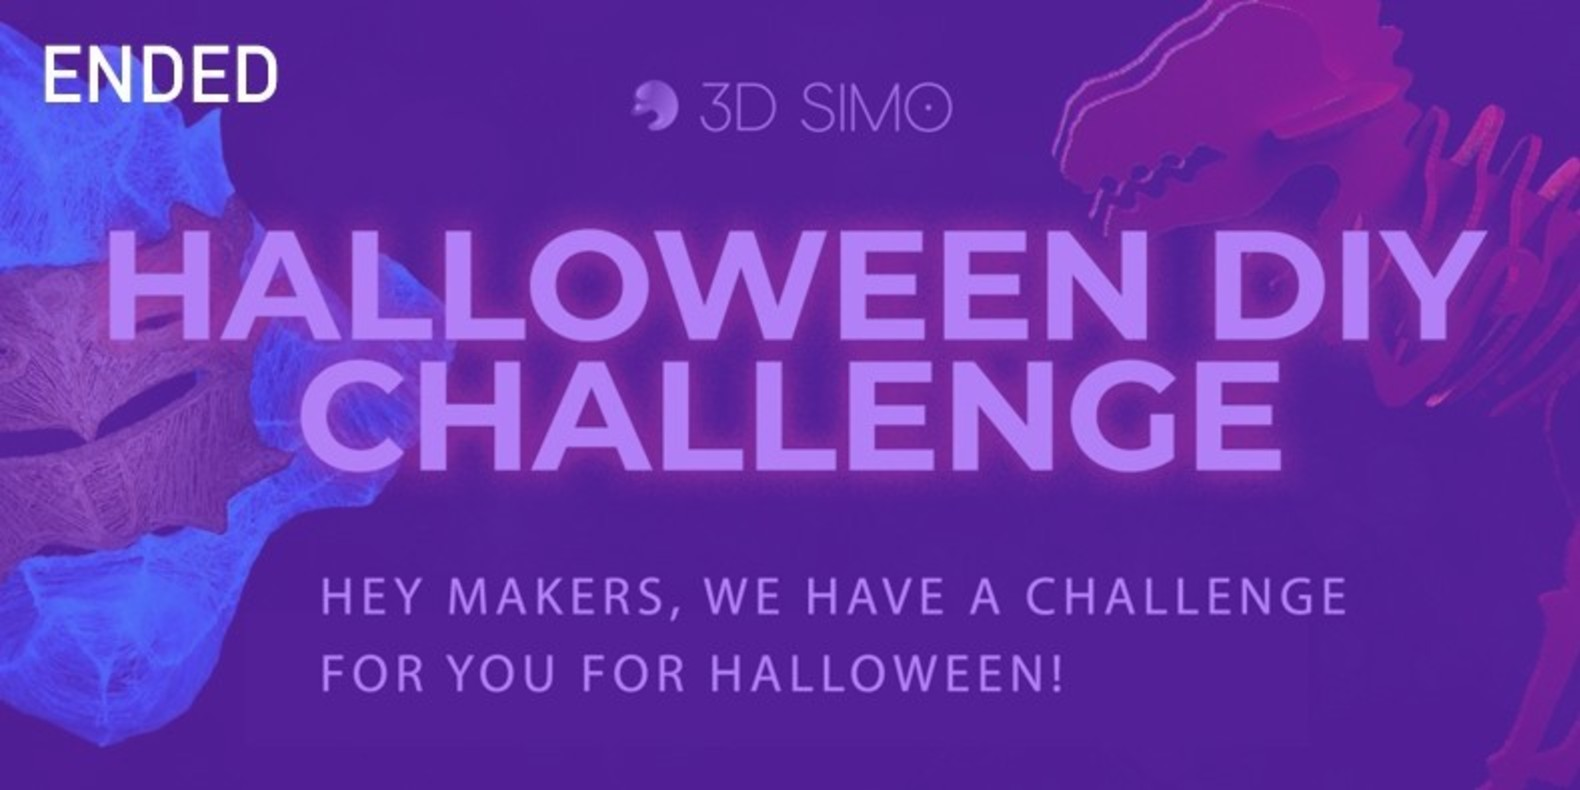 Hey makers, Halloween is near and we've got challenge for you!